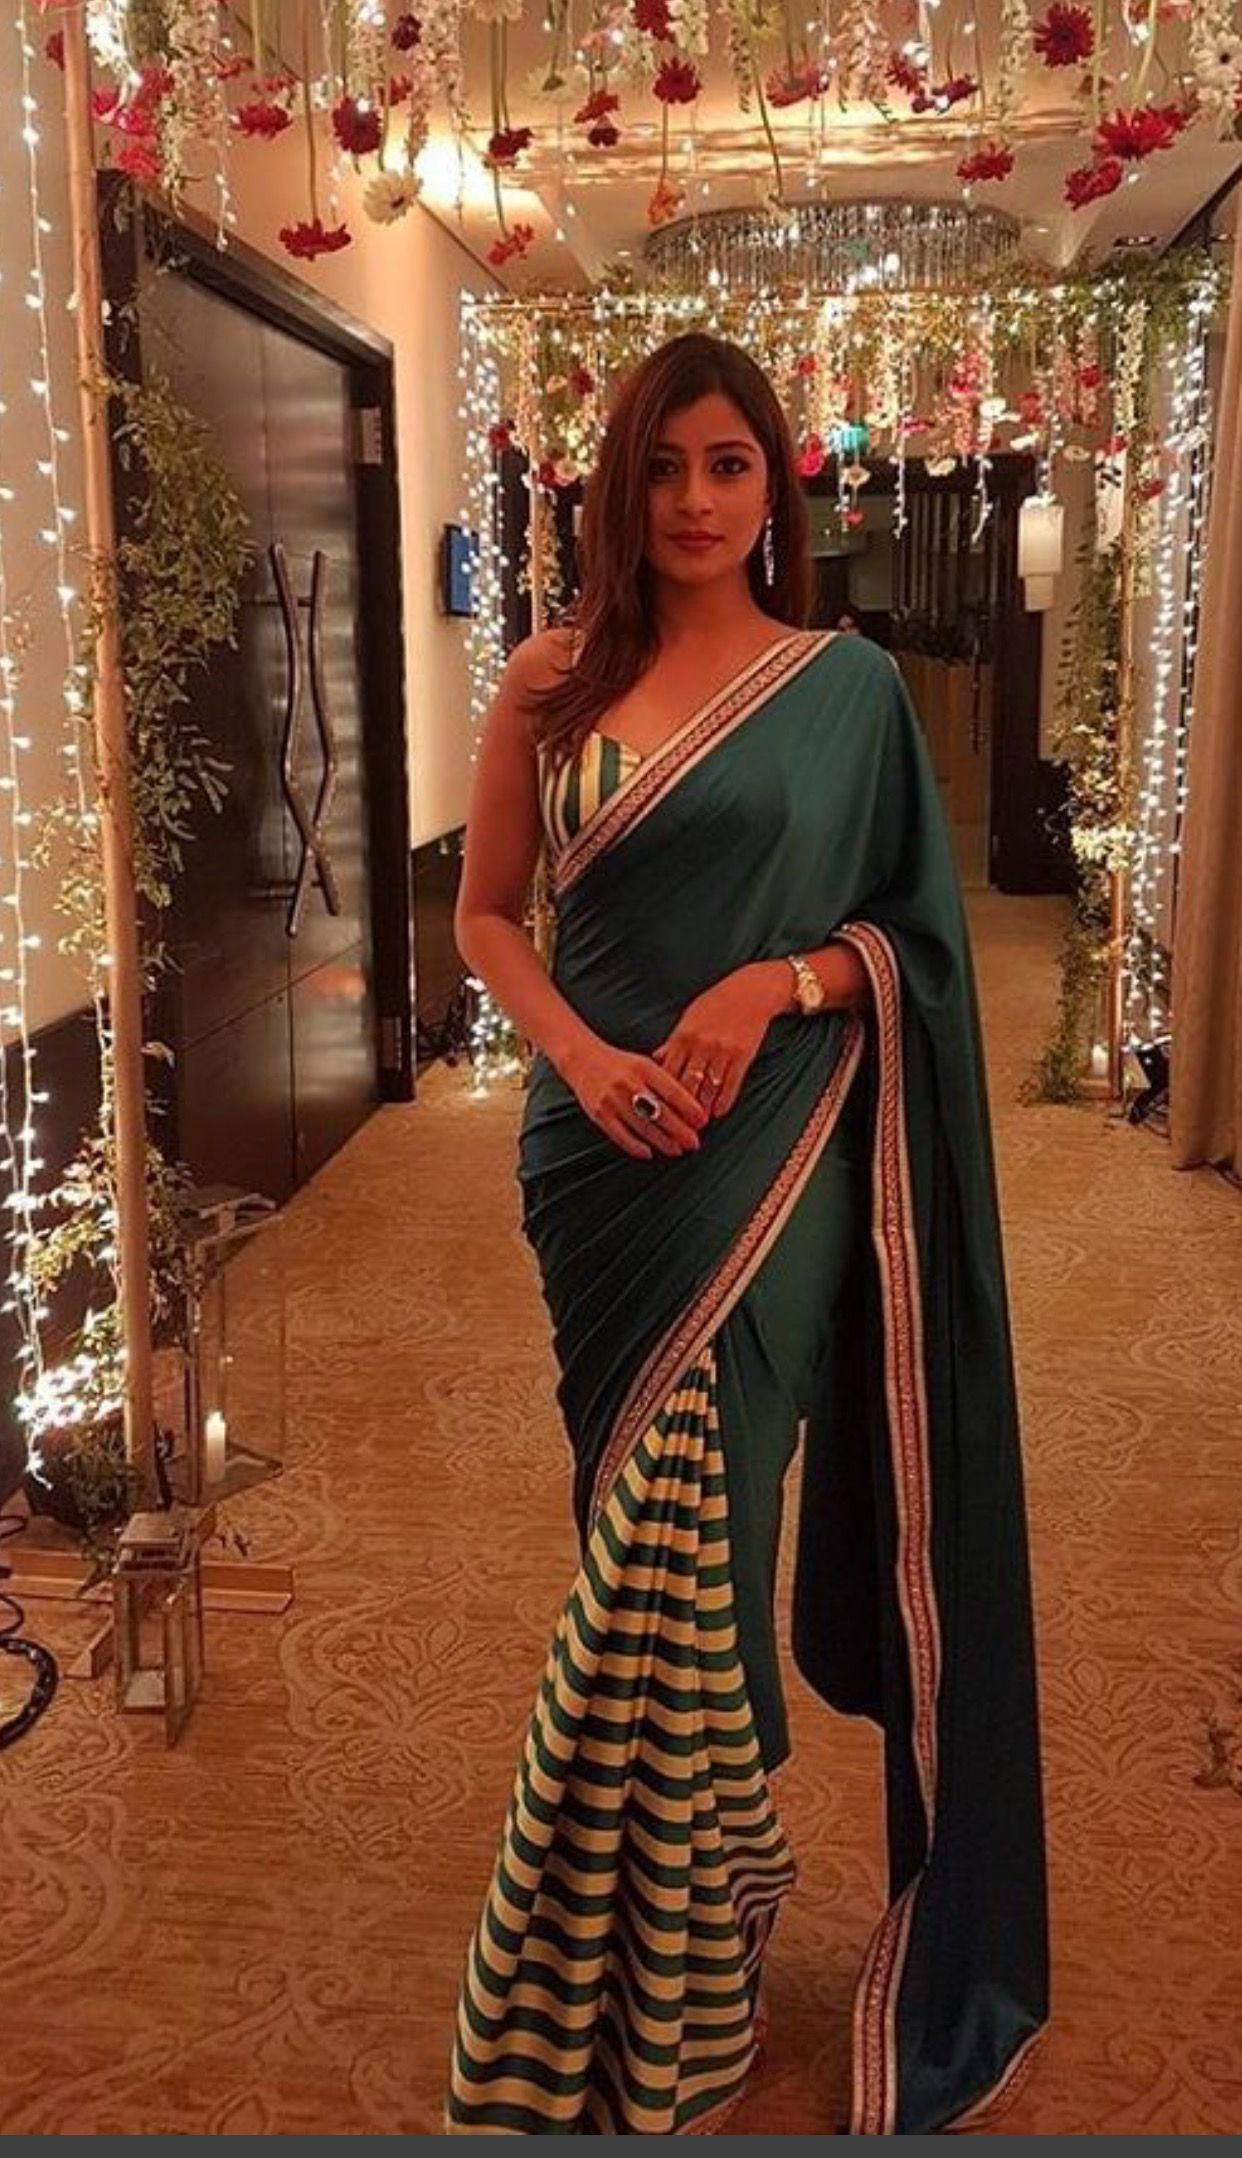 Saree for freshers party in college pin by nidhi gupta on saree  pinterest  saree emeralds and indian